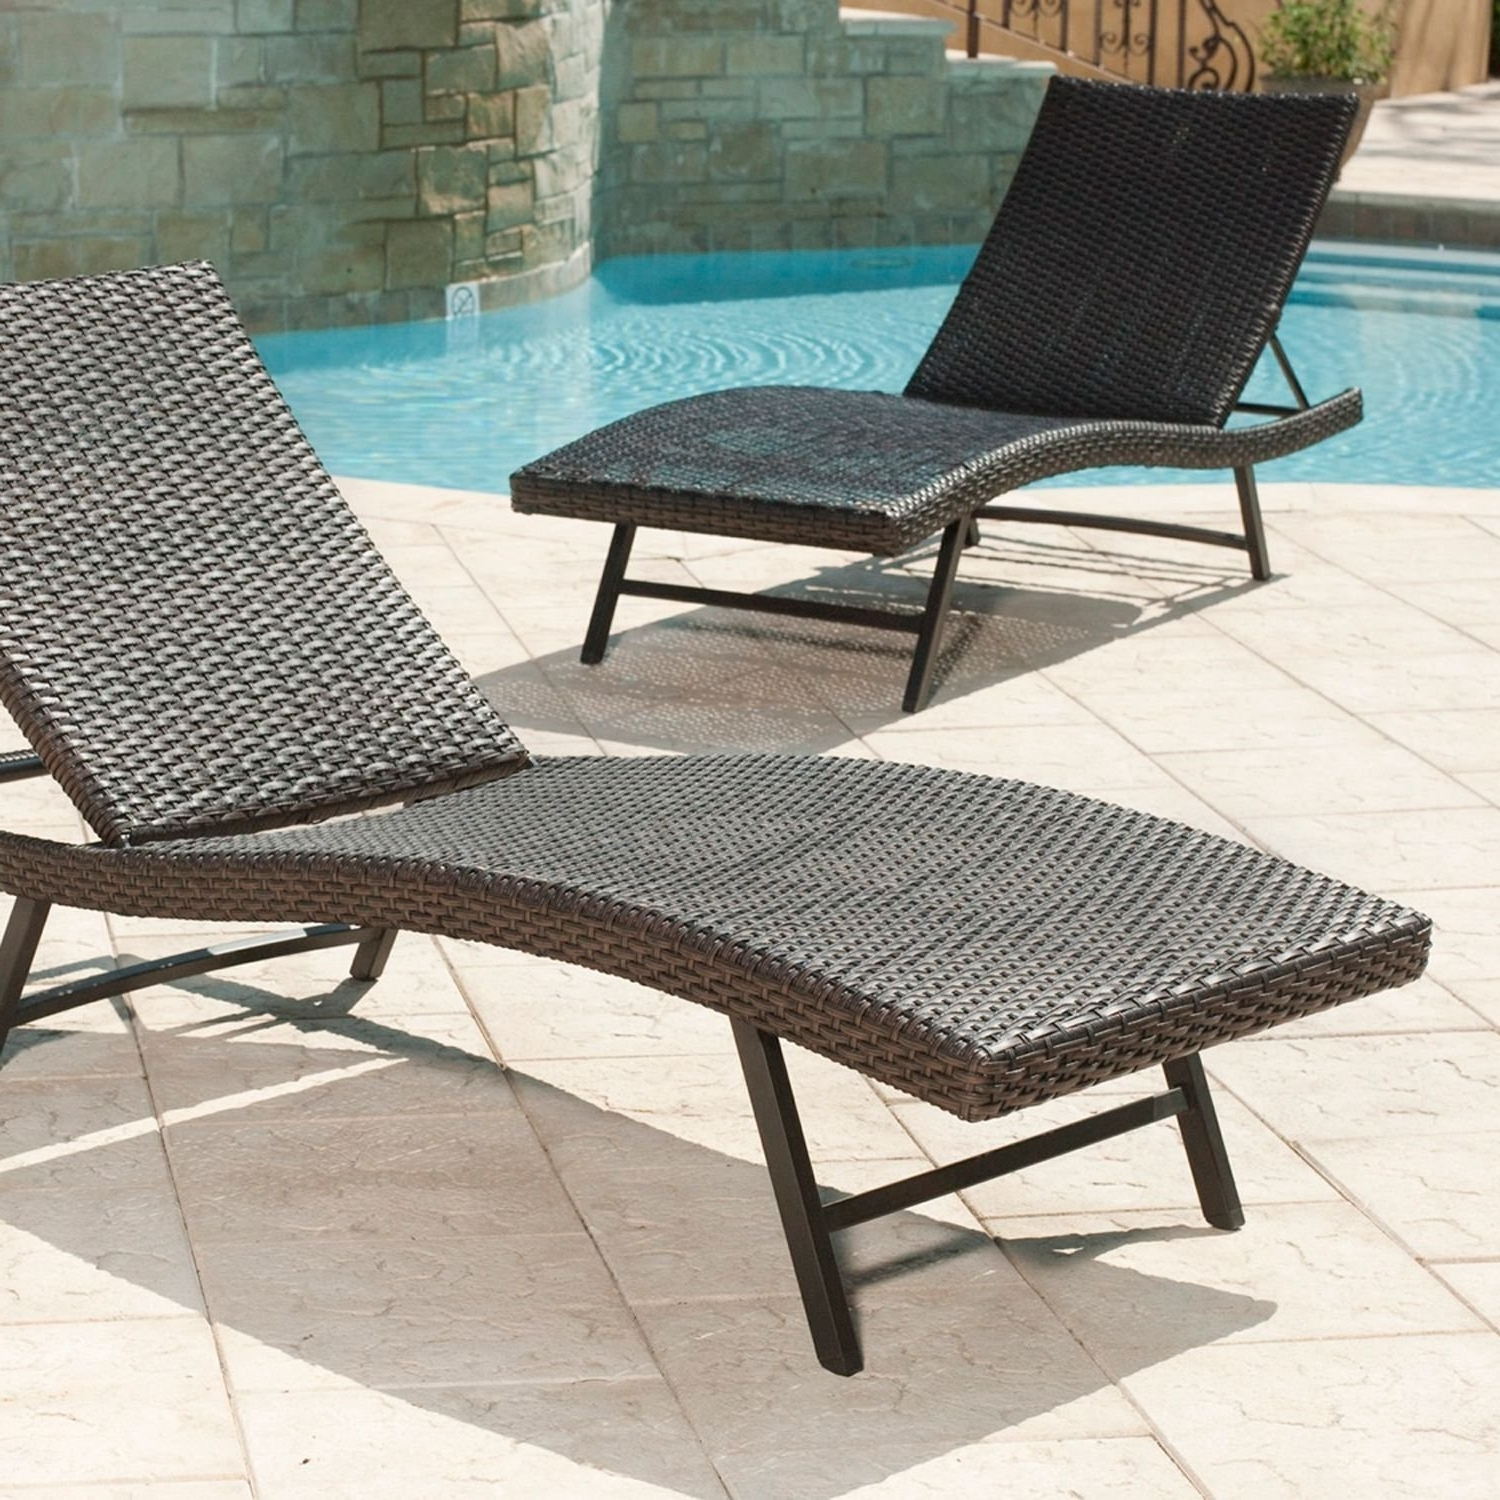 Well Liked Lounge Chair : Poolside Loungers Double Chaise Lounge Chair Buy Inside Chaise Lounge Chairs For Poolside (View 3 of 15)